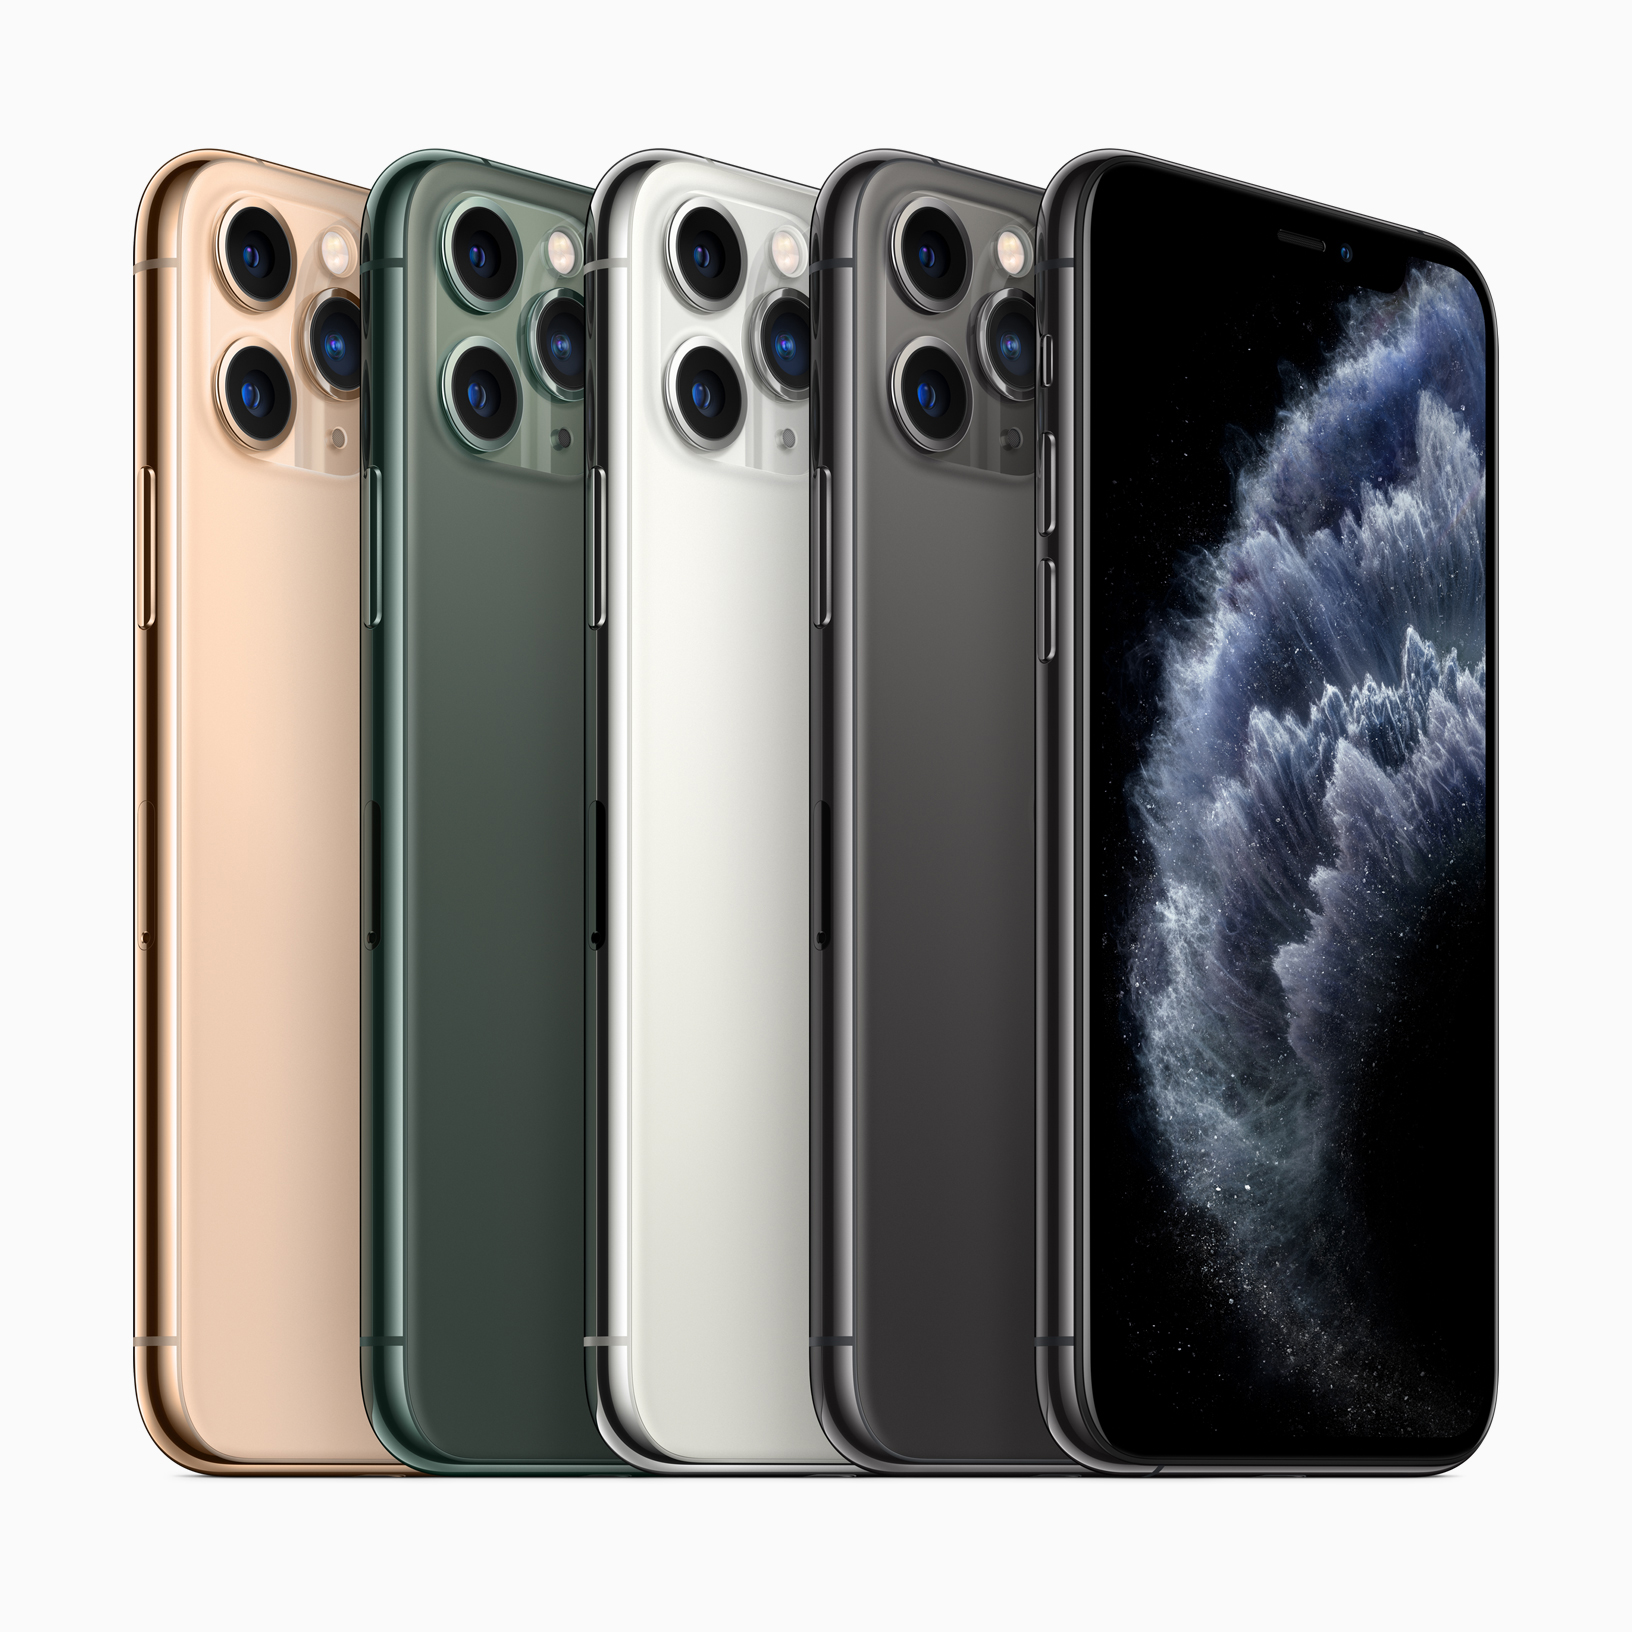 From right: gold, midnight green, silver, and space gray iPhone 11 Pro. Images via Apple